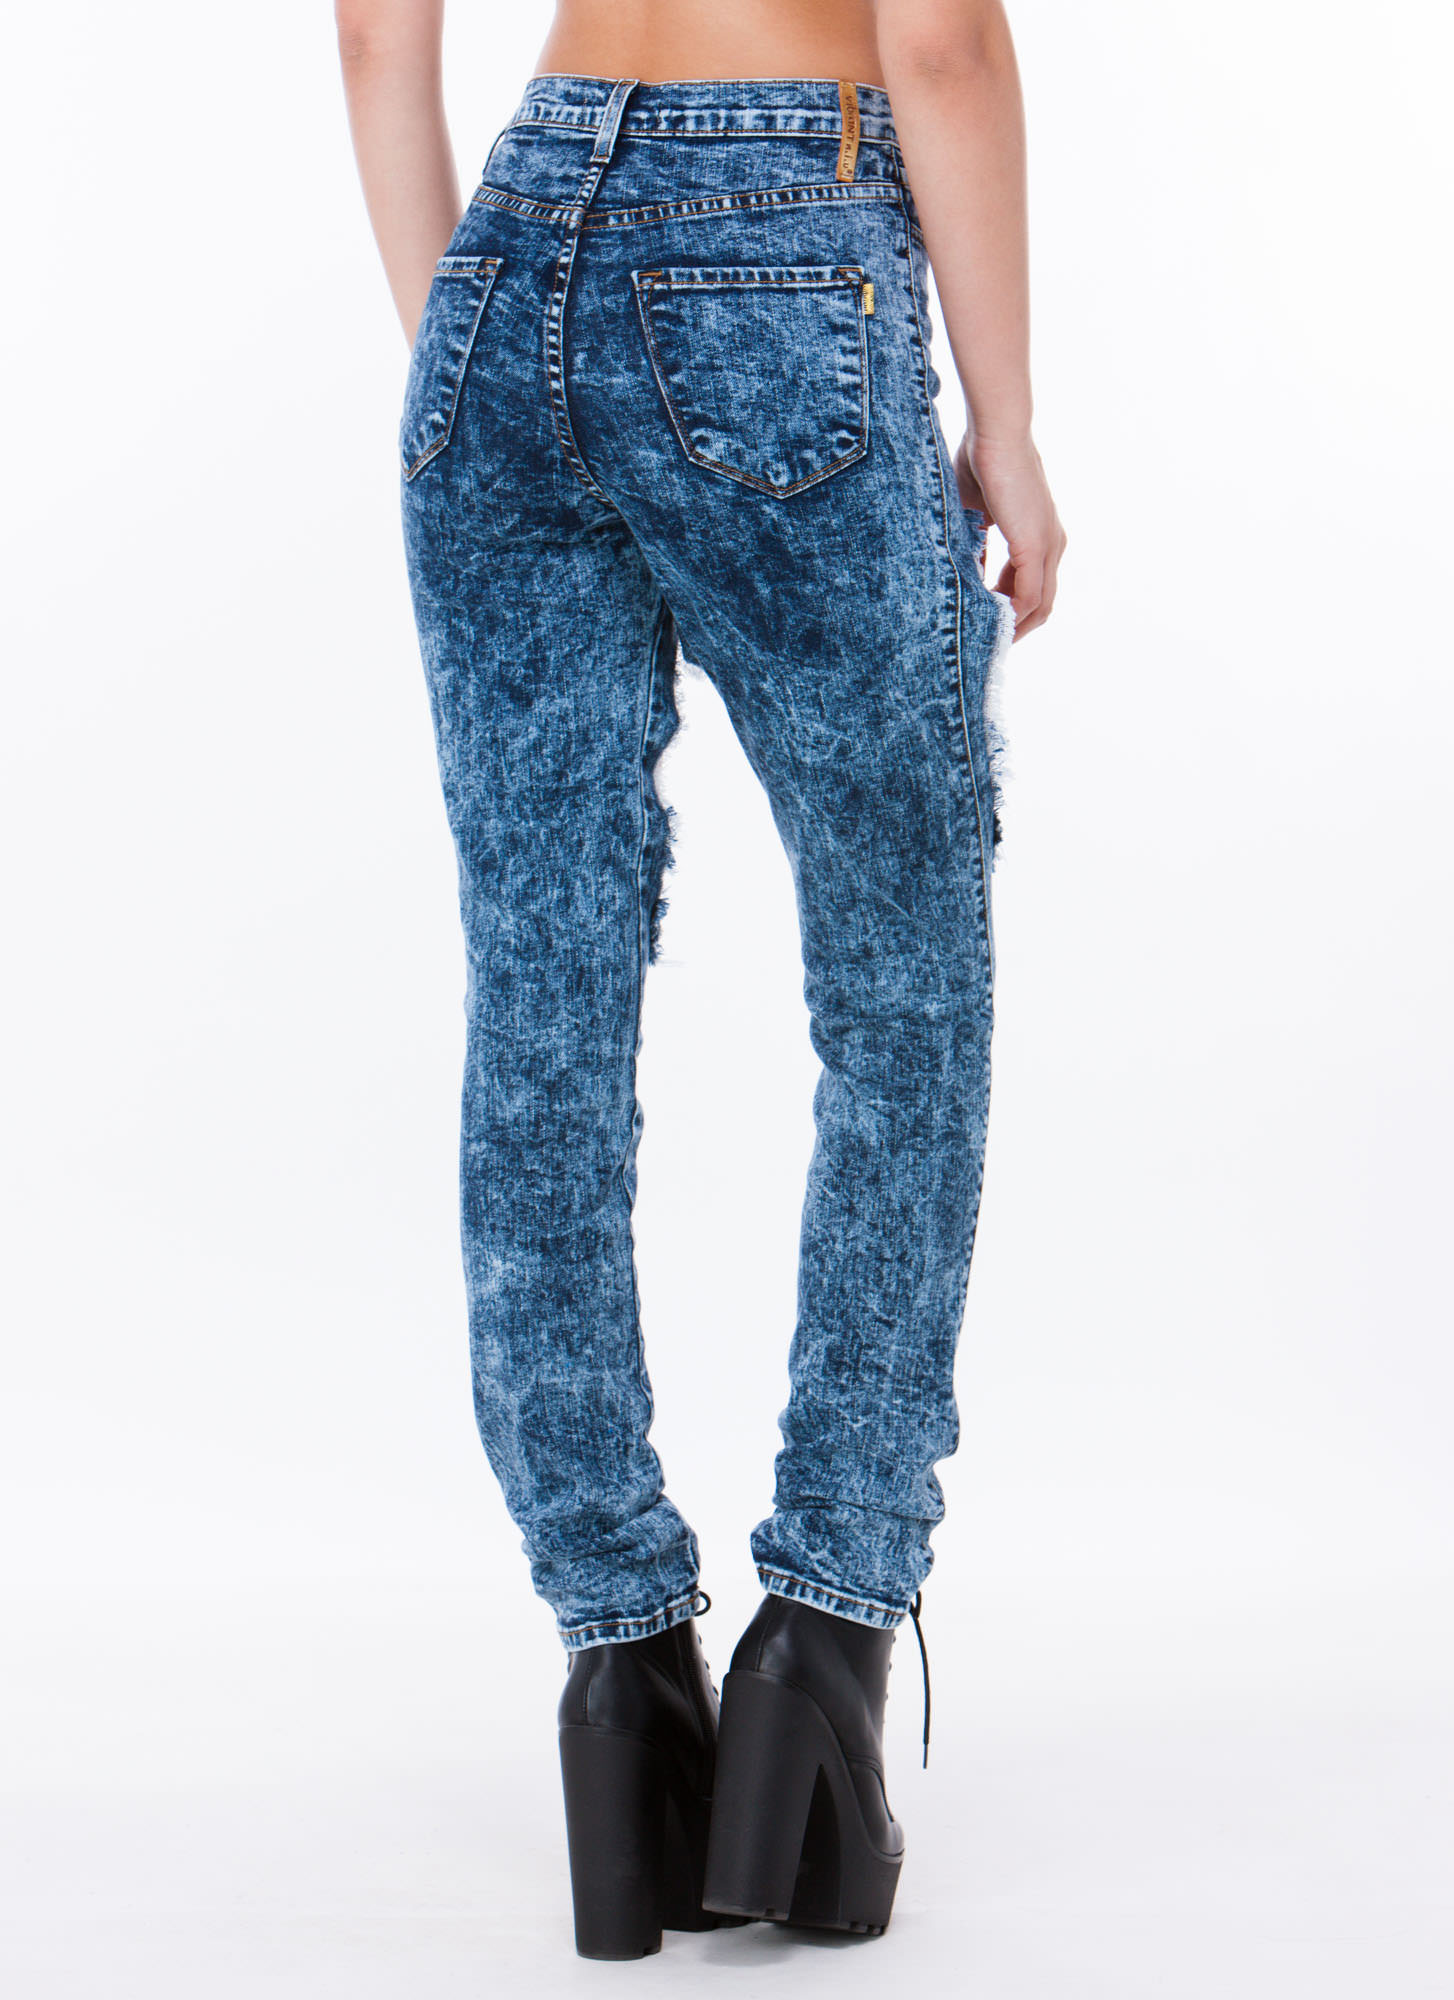 Hole Lotta Leg Acid Washed Jeans DKBLUE